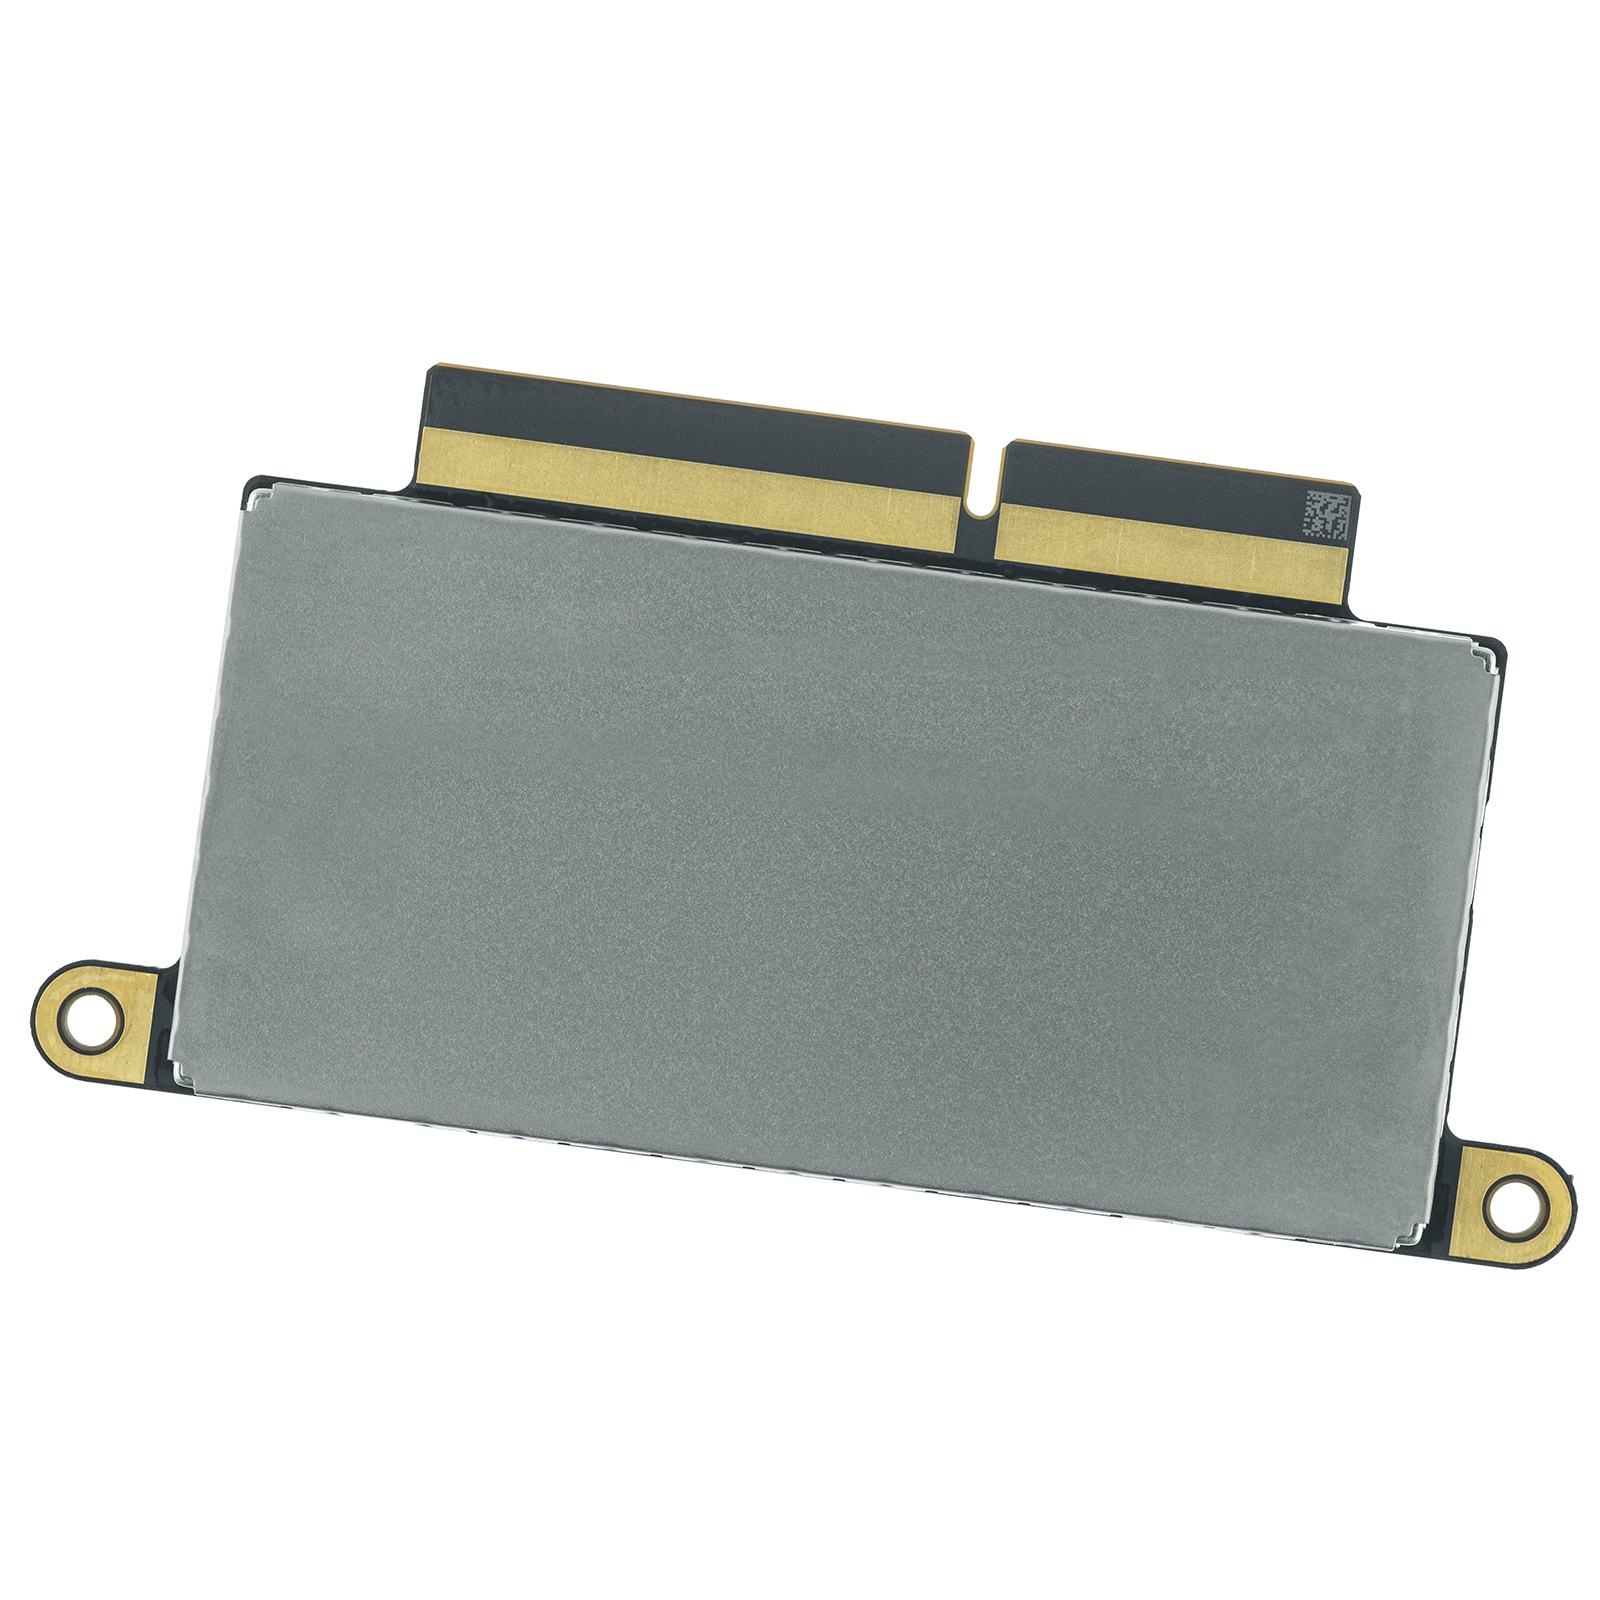 Solid State Drive (512GB)